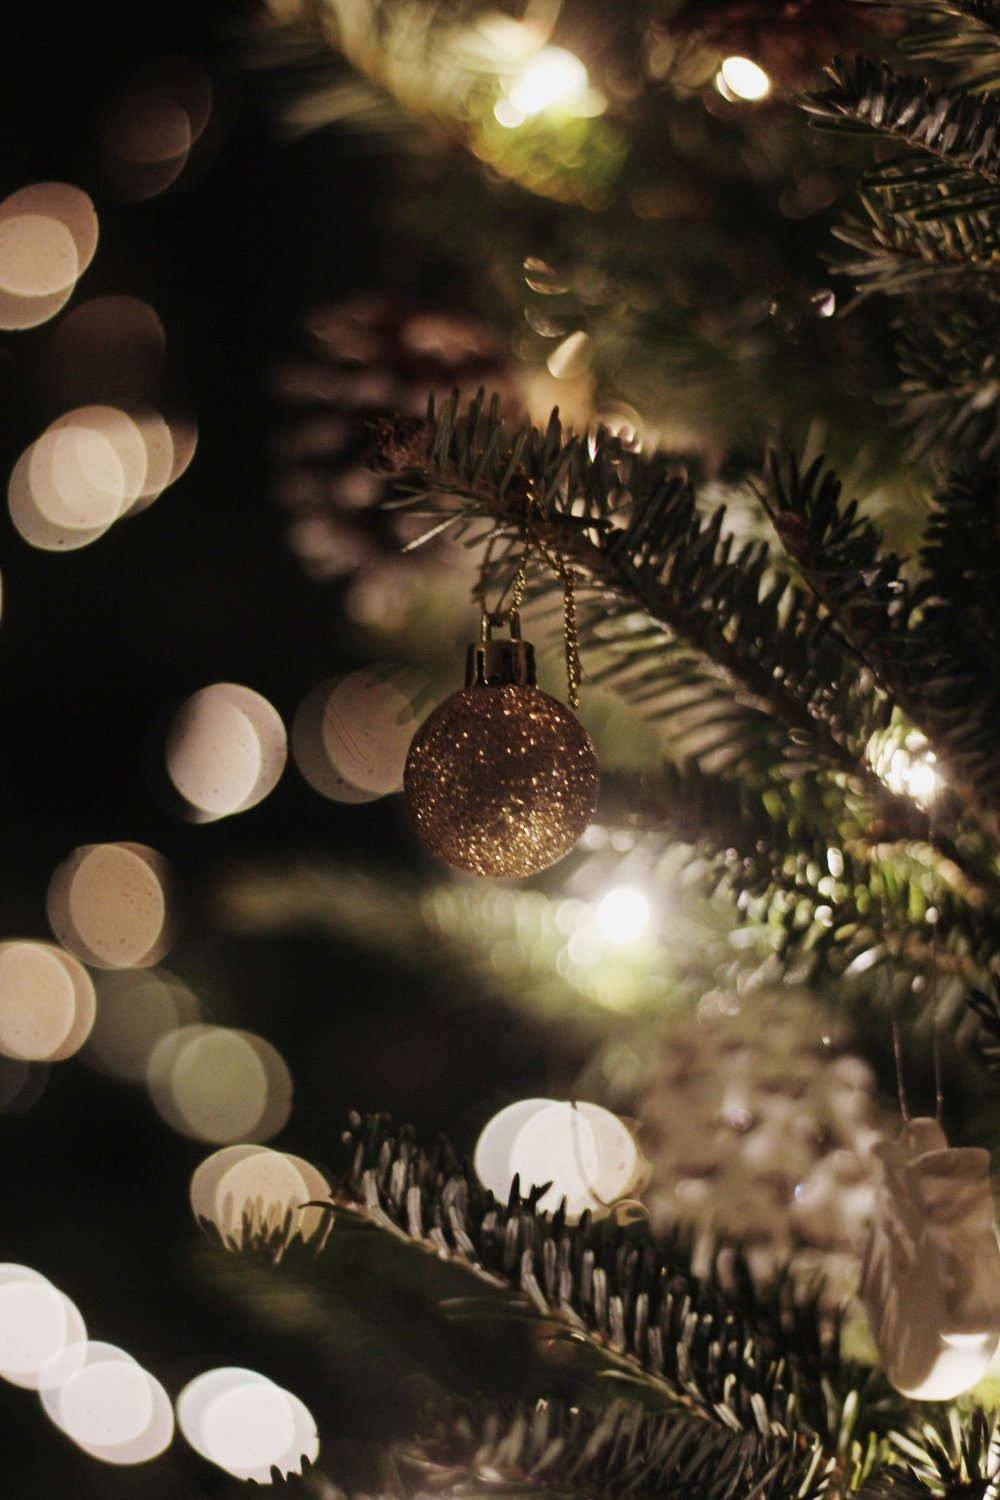 Christmas tree with bokeh and decorations